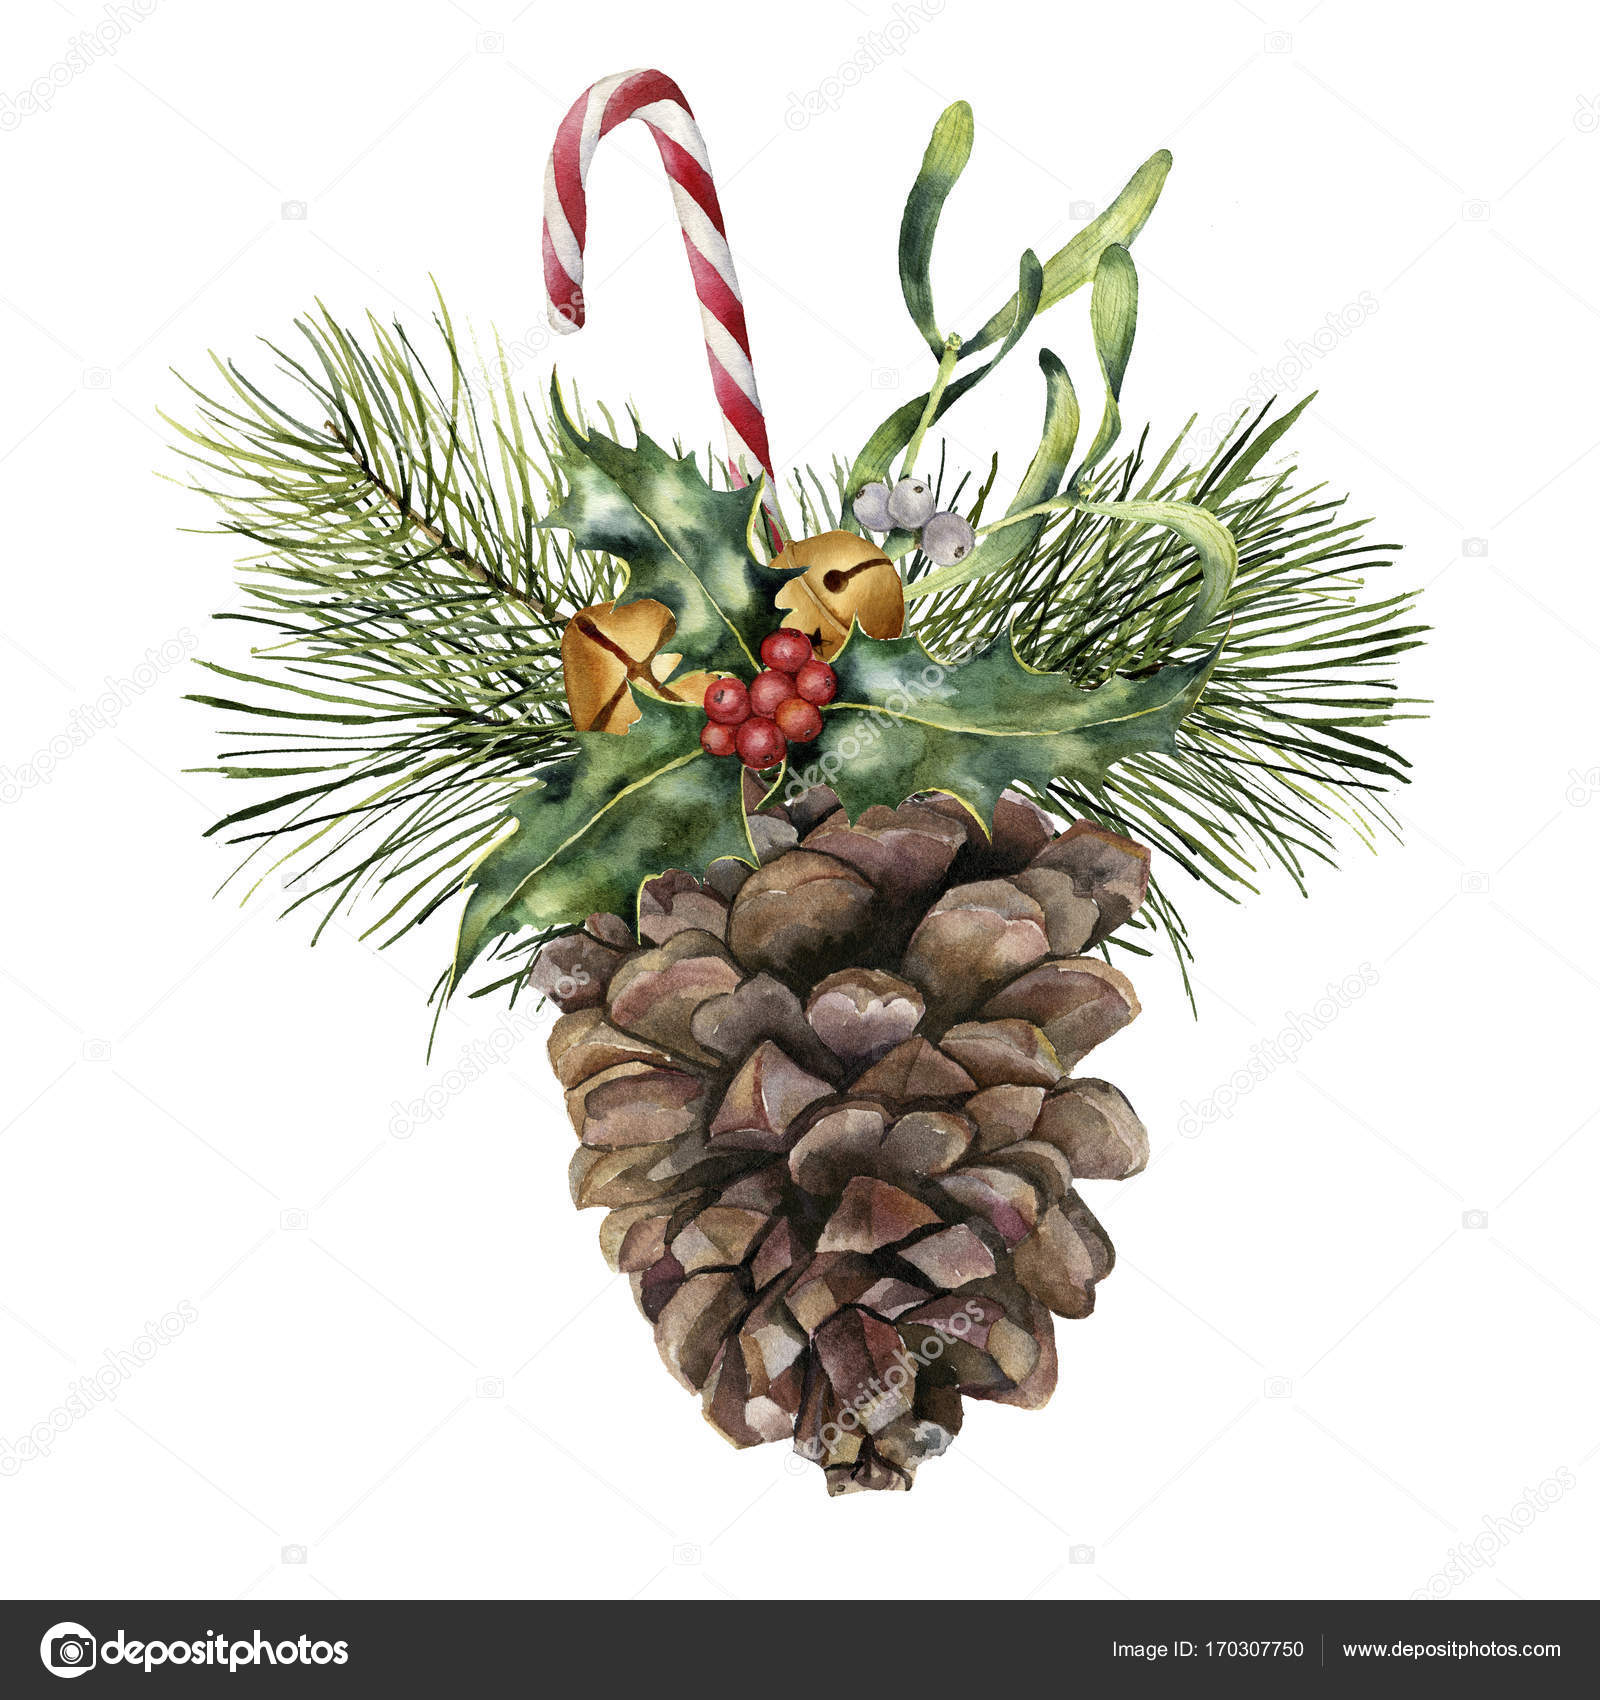 Watercolor pine cone with holiday decor Hand painted pine cone with